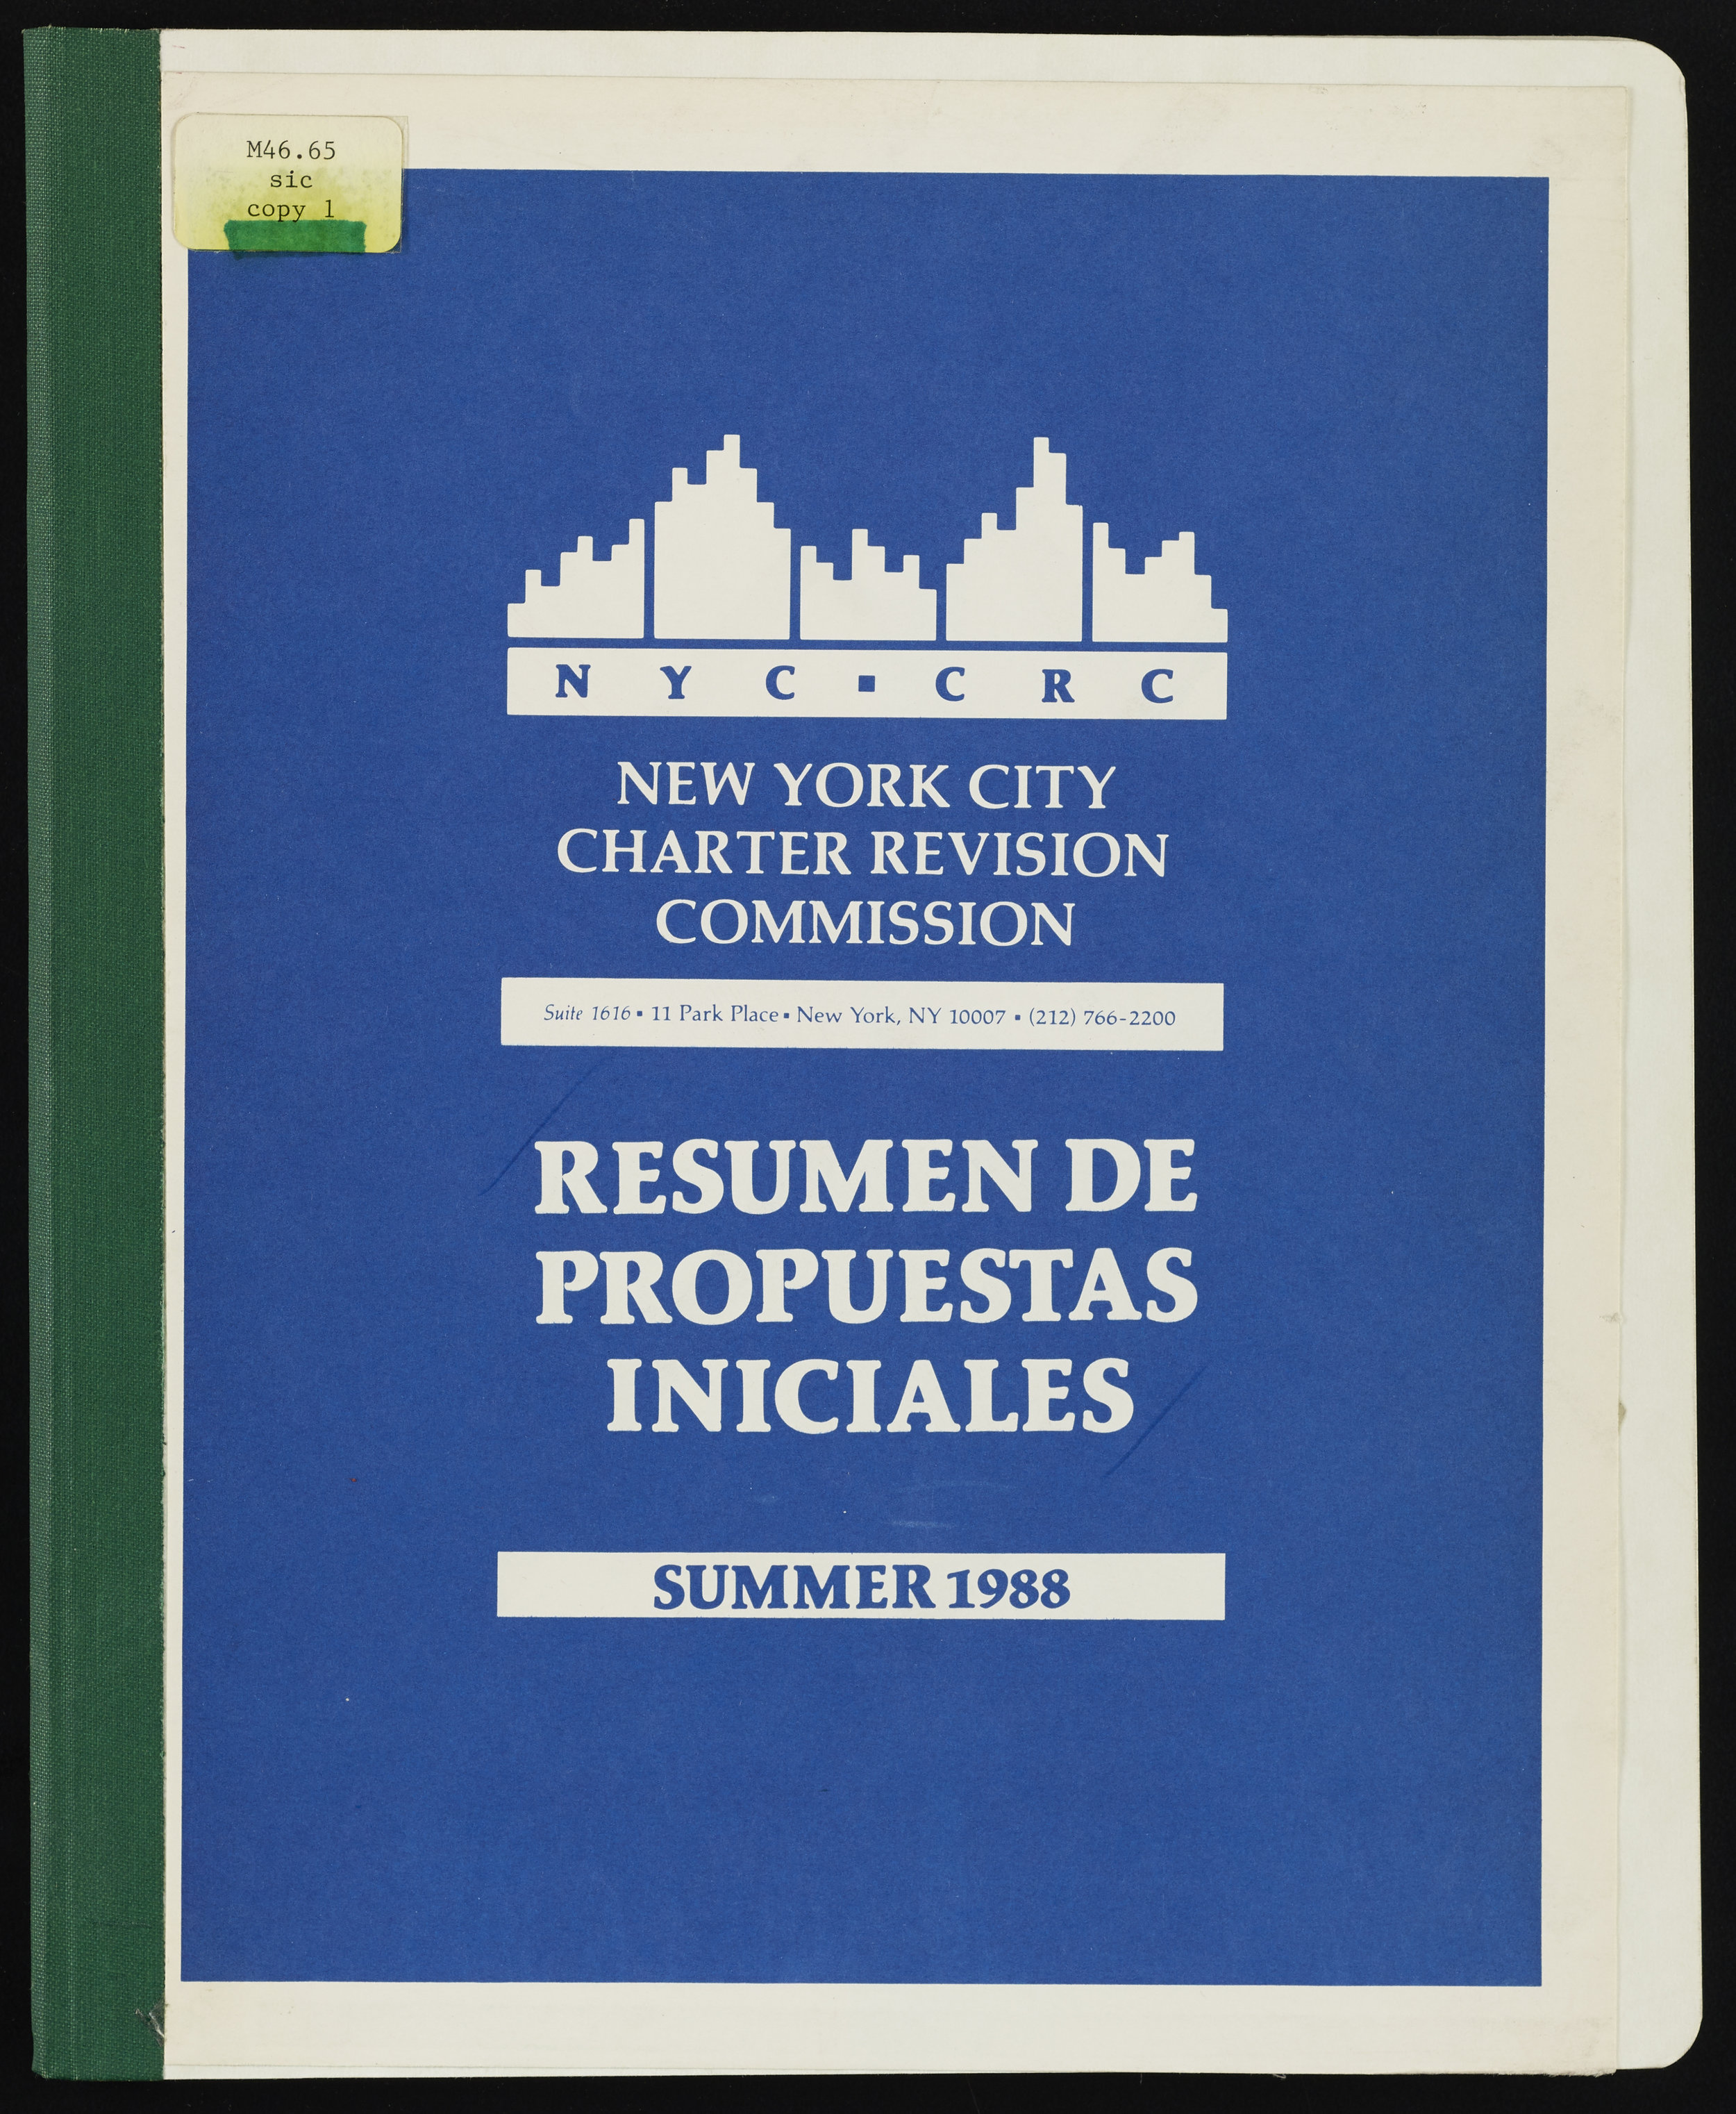 library_M46.65sic_cover 1.jpg